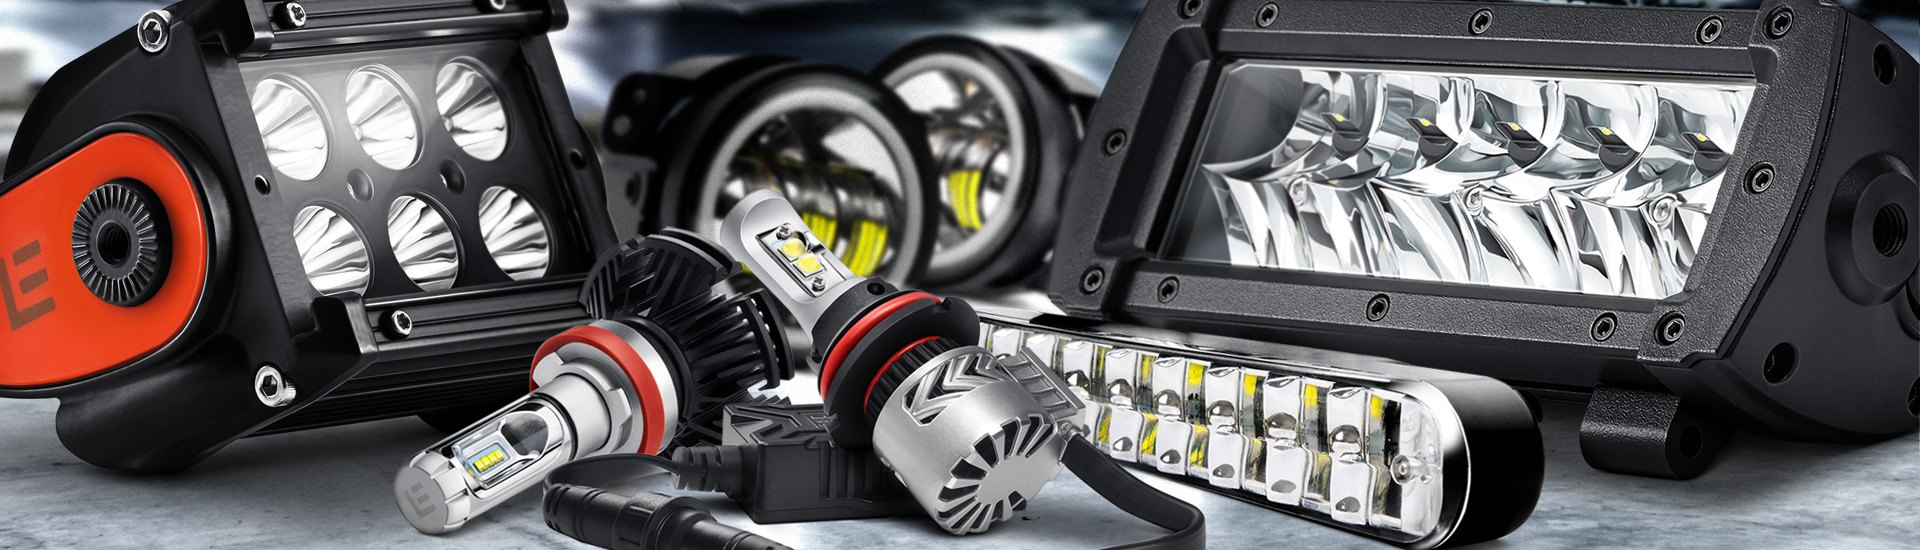 Automotive LED Lighting Explained